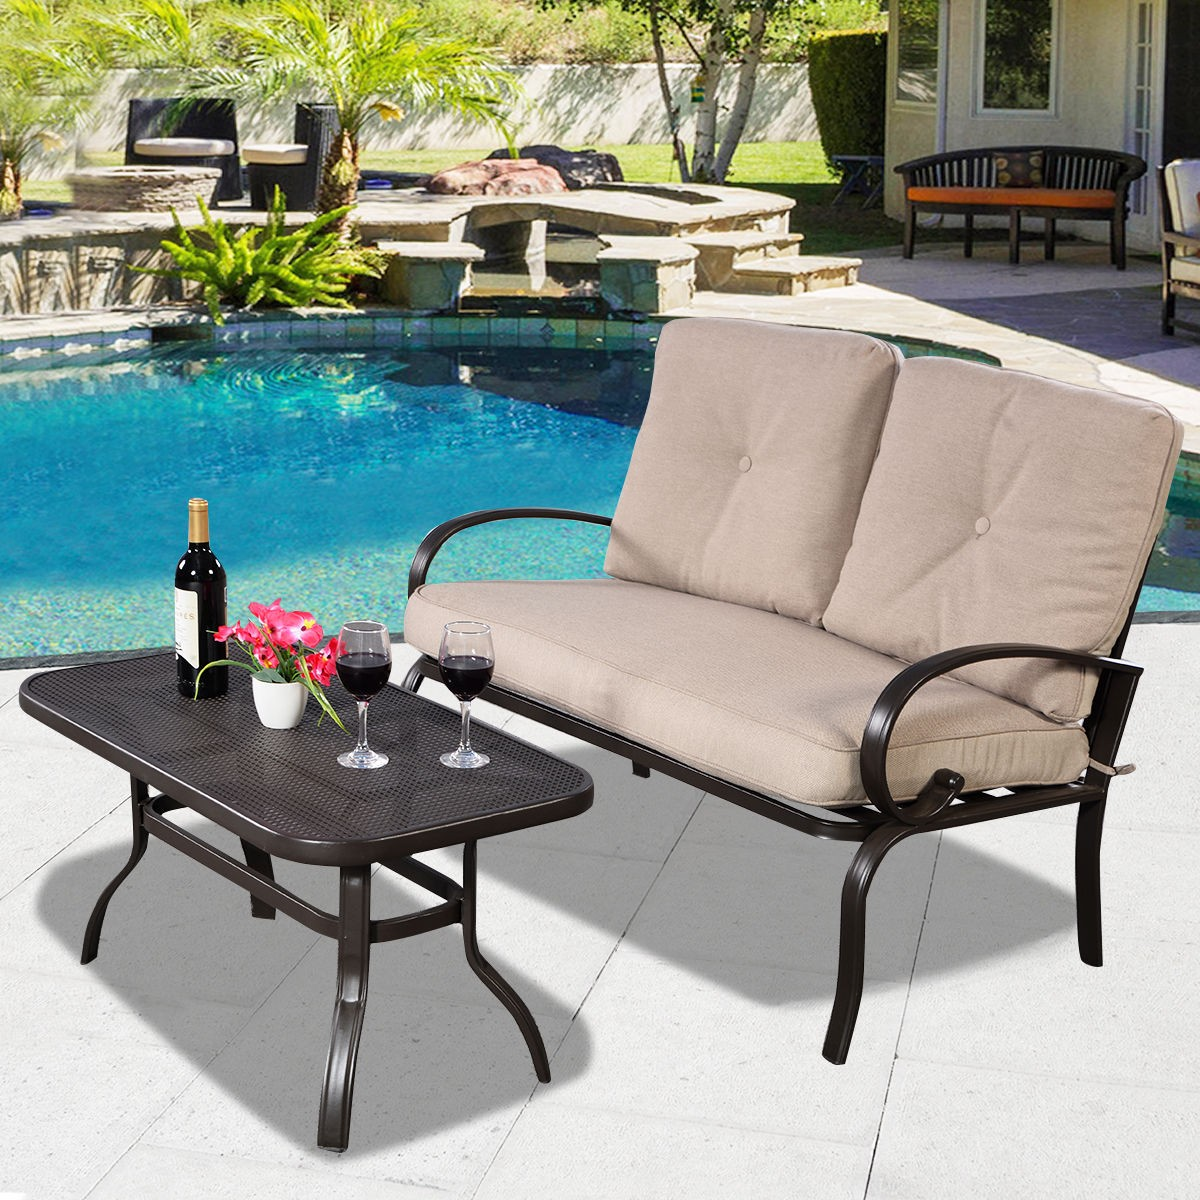 Picture of: 2 Pcs Patio Outdoor Loveseat Coffee Table Set Furniture Bench With Cushion New 6952938384421 Ebay